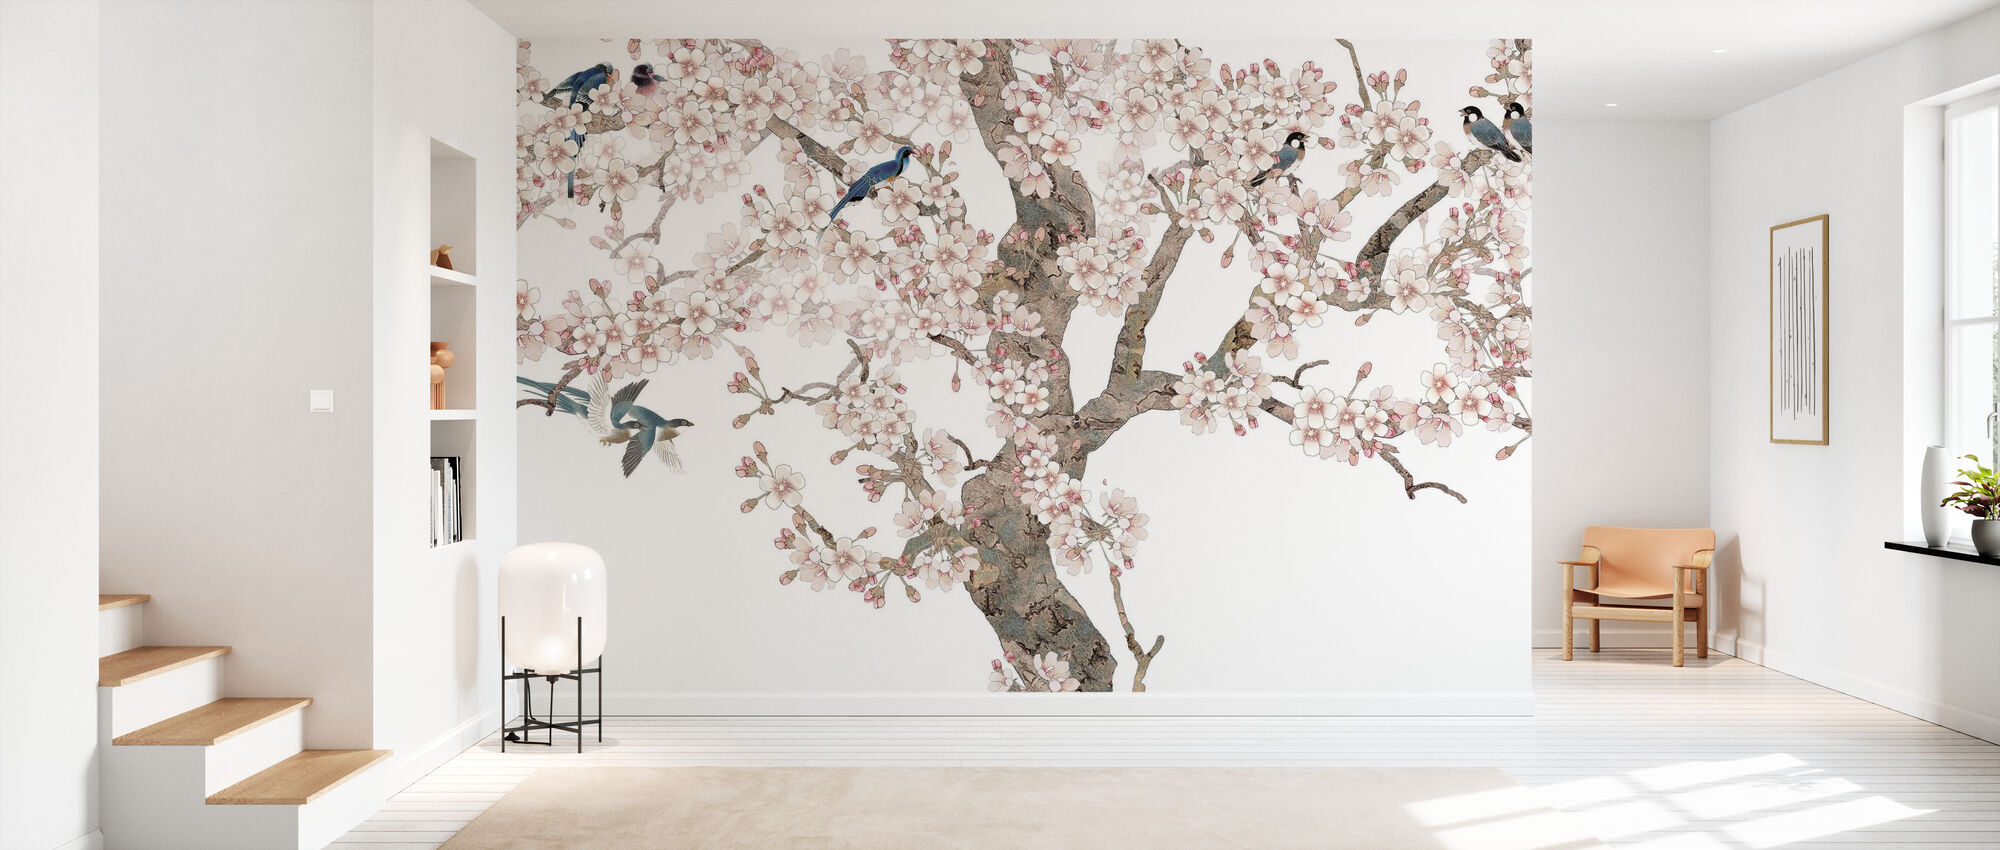 Doux Birds Home - Wallpaper - Hallway